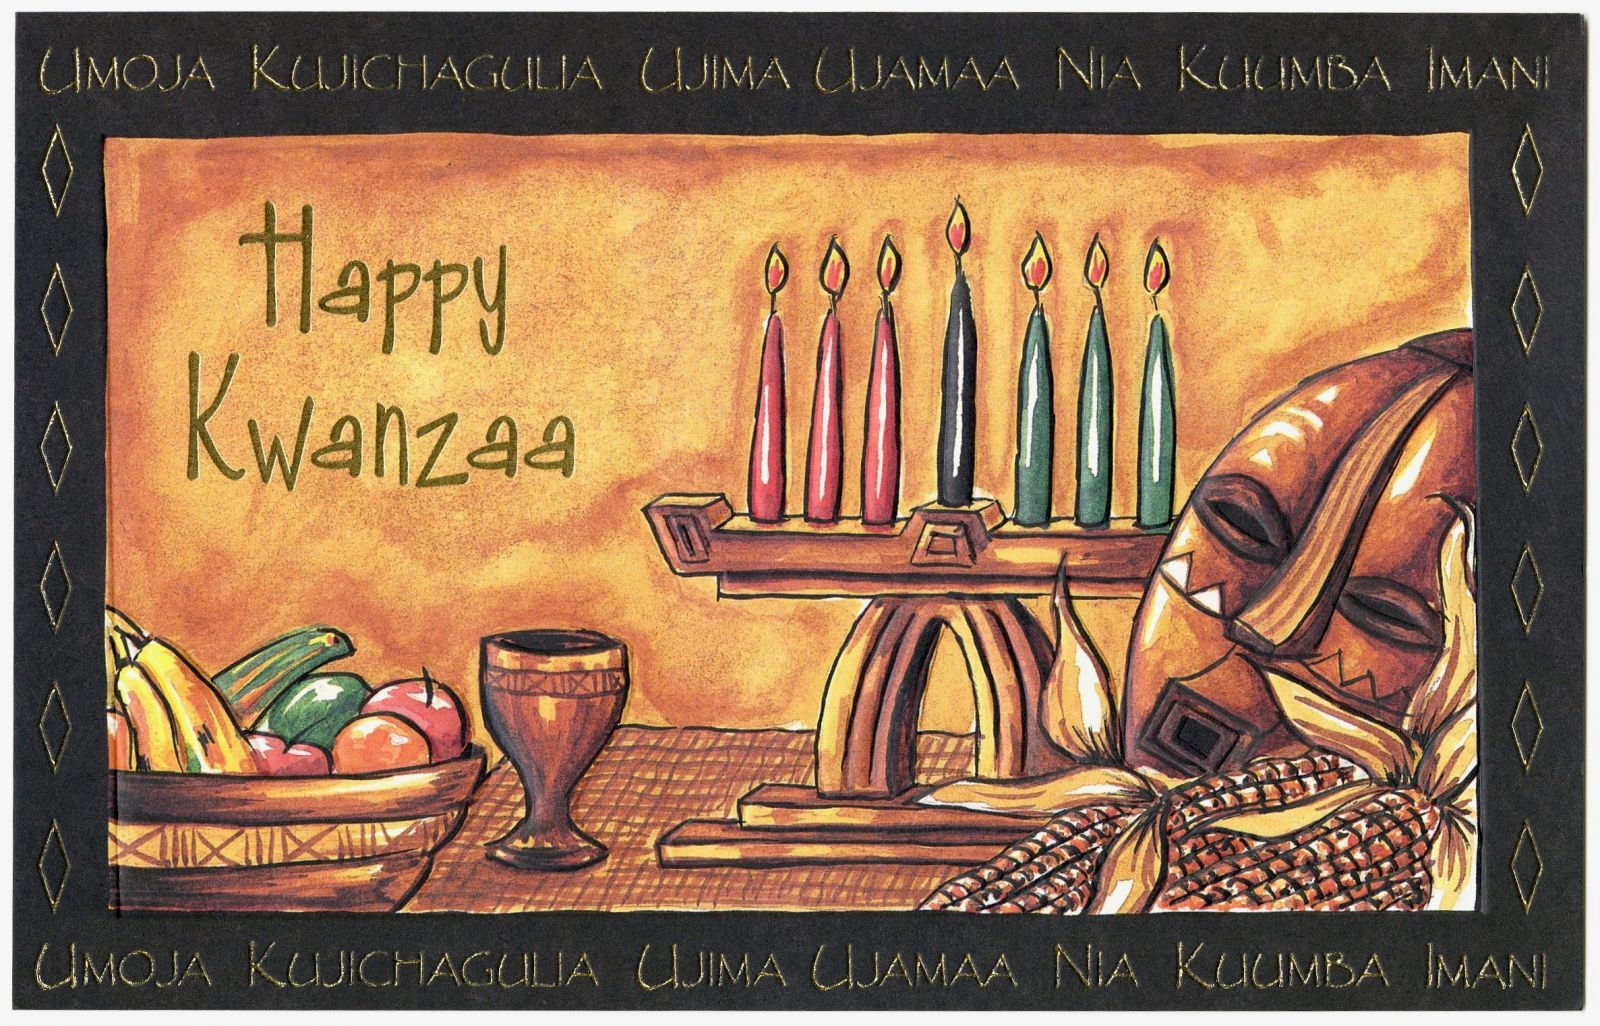 "Exterior/cover of a greeting card depicting a decorated Kwanzaa table, including a Kinara, fruits, a unity cup, the mat, ears of corn, and an African mask. The scene is painted. ""Happy Kwanzaa"" is printed in gold text, with the seven values also in gold text surrounding the scene in a black border."